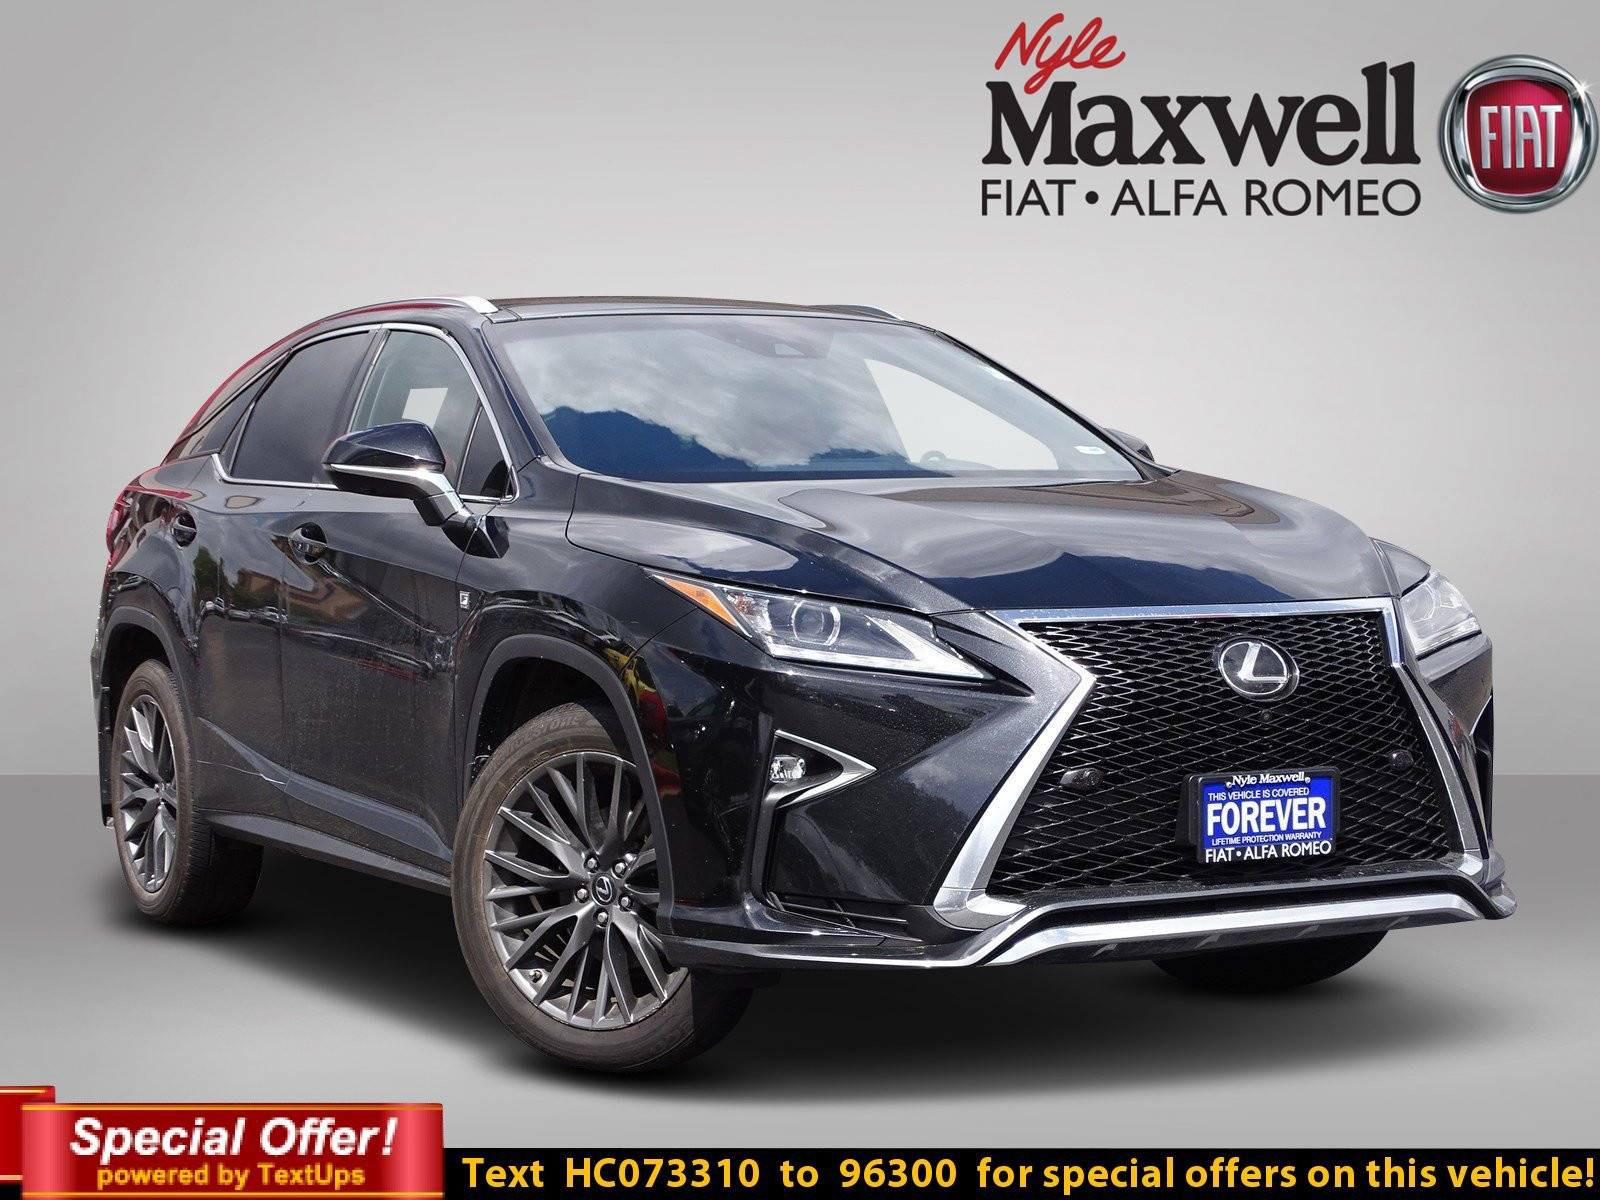 gs hardwood floors ltd of pre owned 2017 lexus rx rx 350 sport utility in austin hc073310 intended for pre owned 2017 lexus rx rx 350